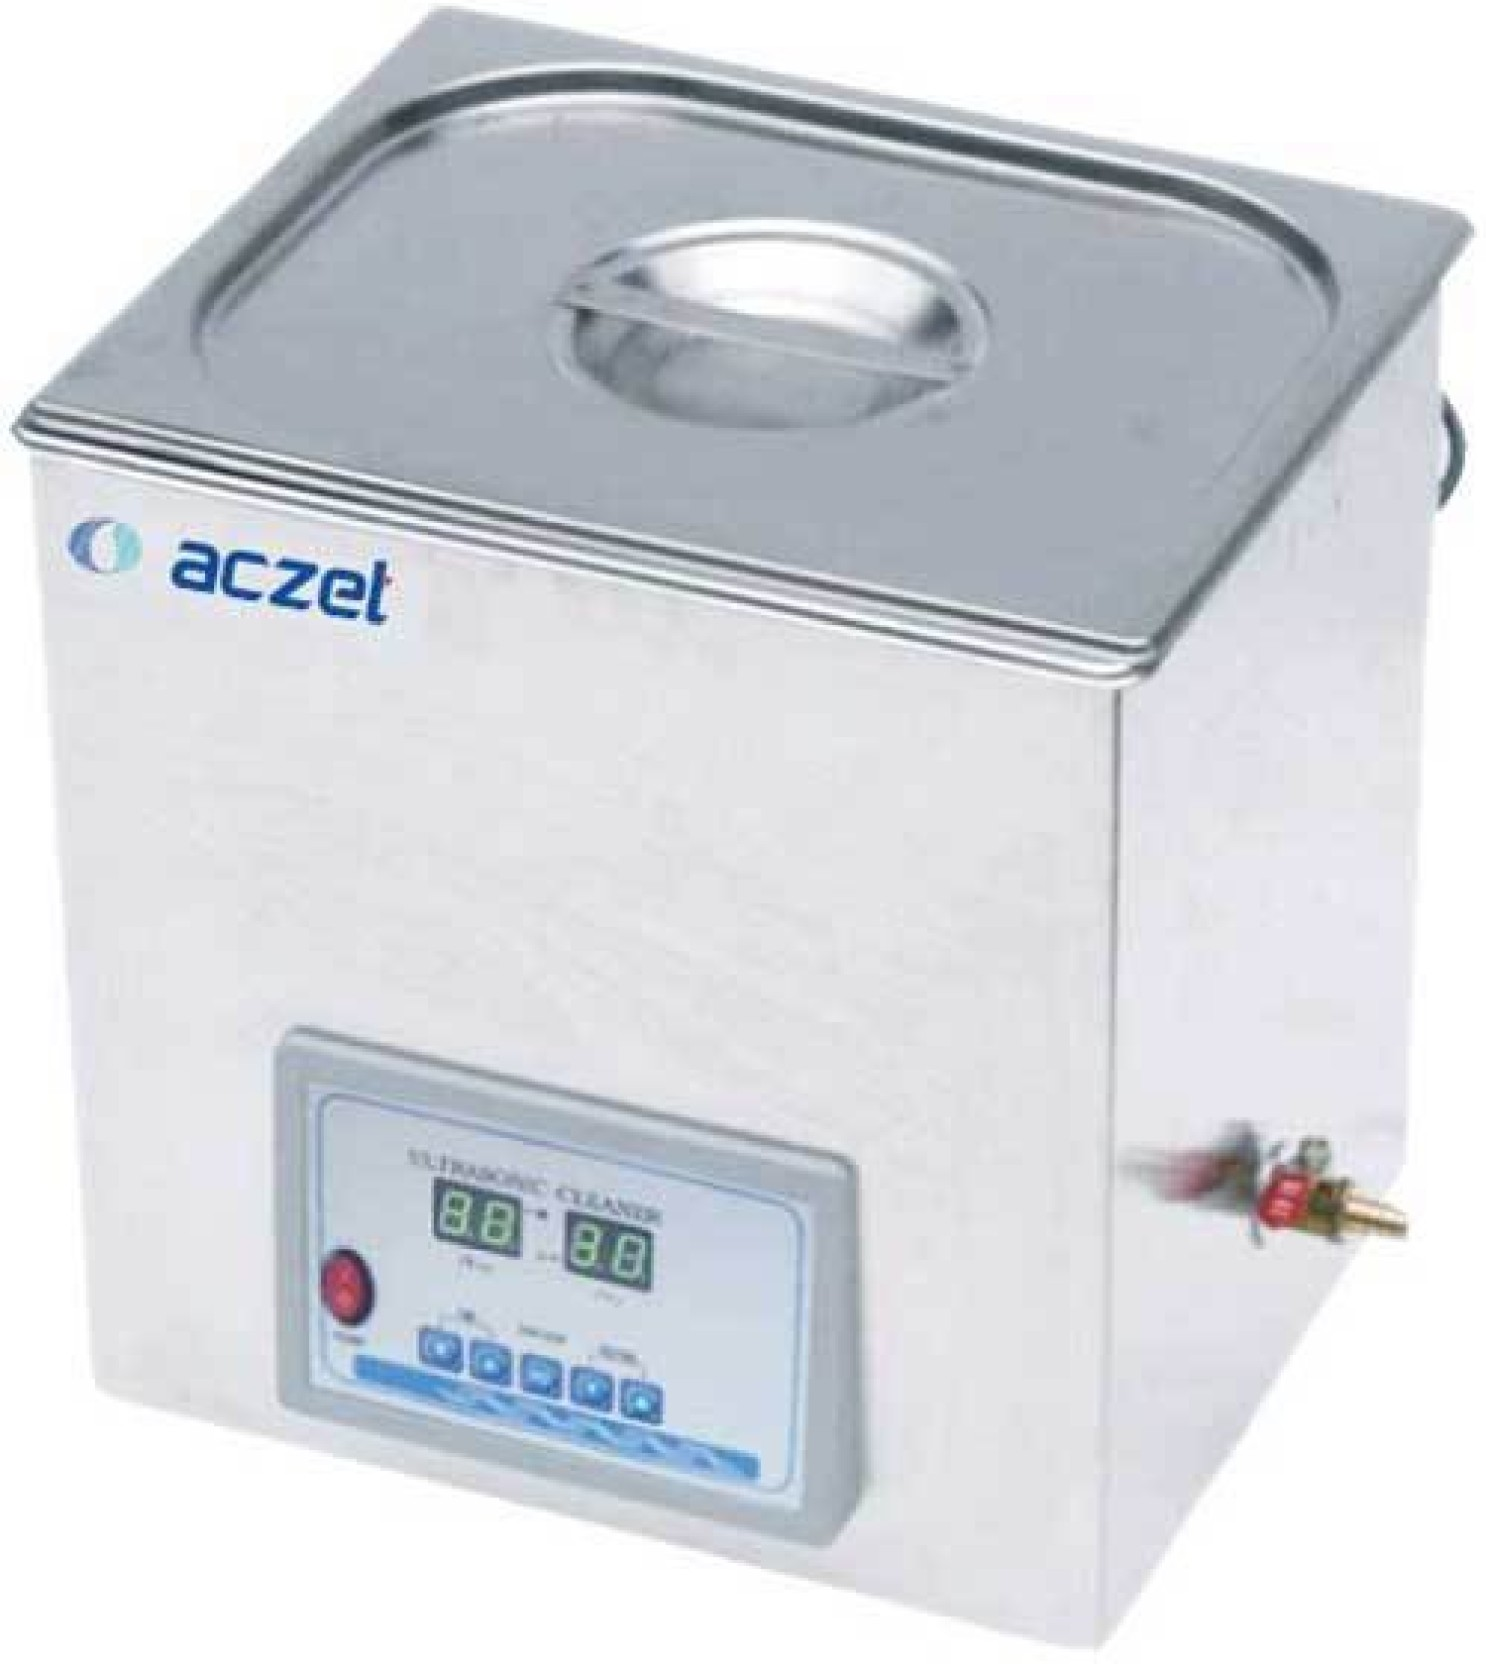 Aczet Ultrasonic Cleaner CUB 5 L Weighing Scale Price in India - Buy ...